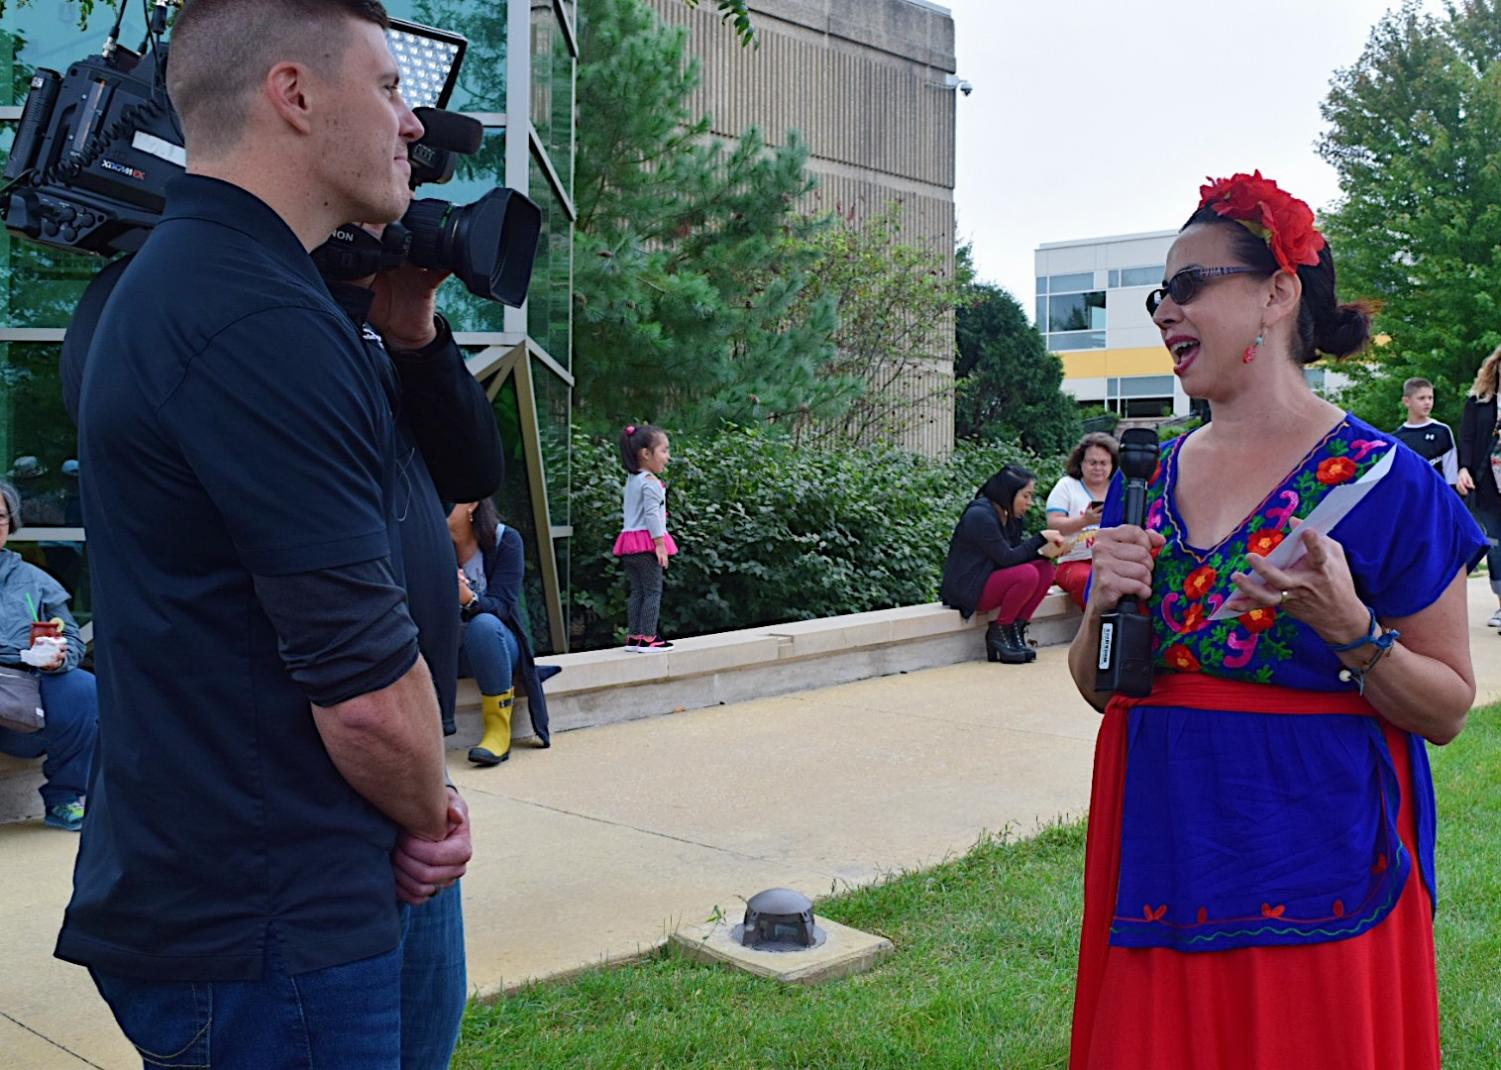 An+attendee%2C+who+is+dressed+to+represent+Frida+Kahlo%2C+being+interviewed.